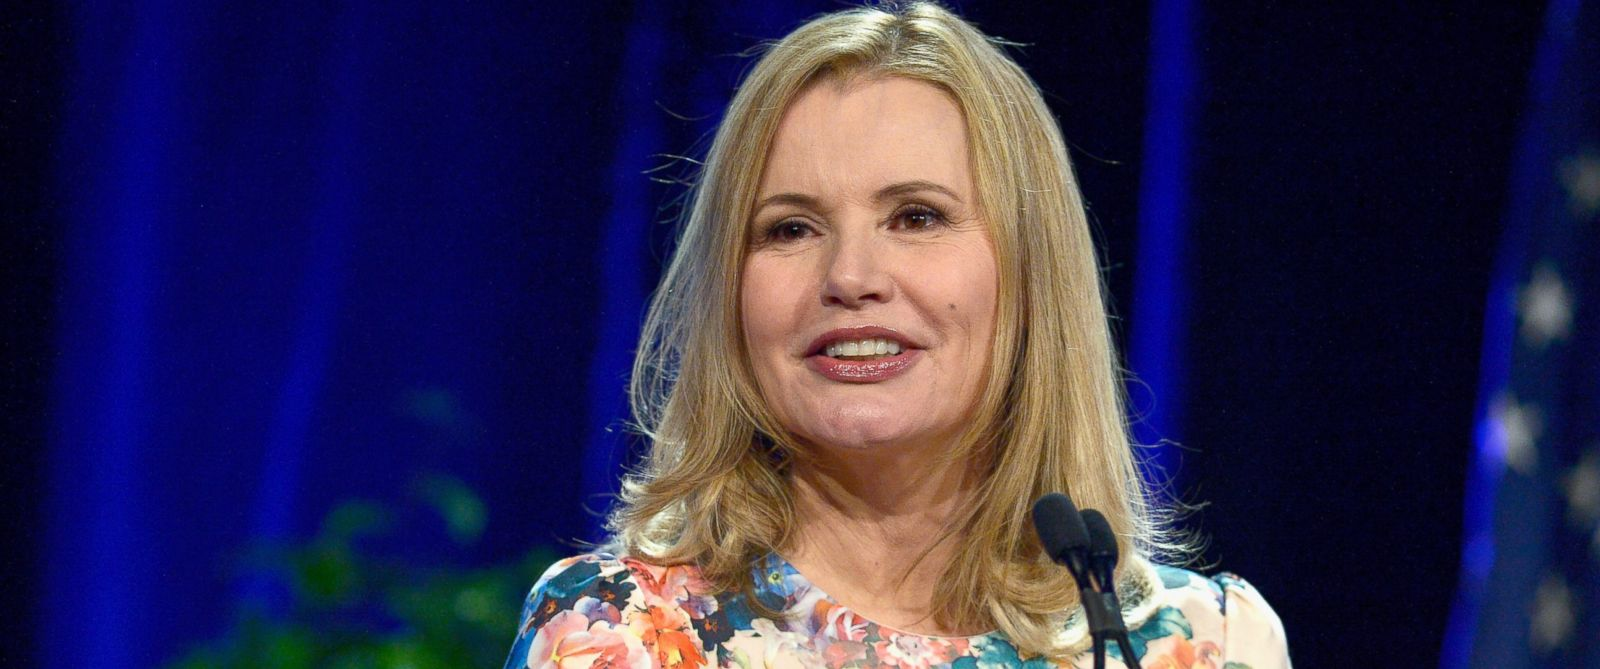 """PHOTO: Geena Davis delivers the Morning Keynote Address at the 2016 37th annual Simmons Leadership conference """"Women Leading Change"""" at Boston Seaport World Trade Center, March 29, 2016 in Boston."""